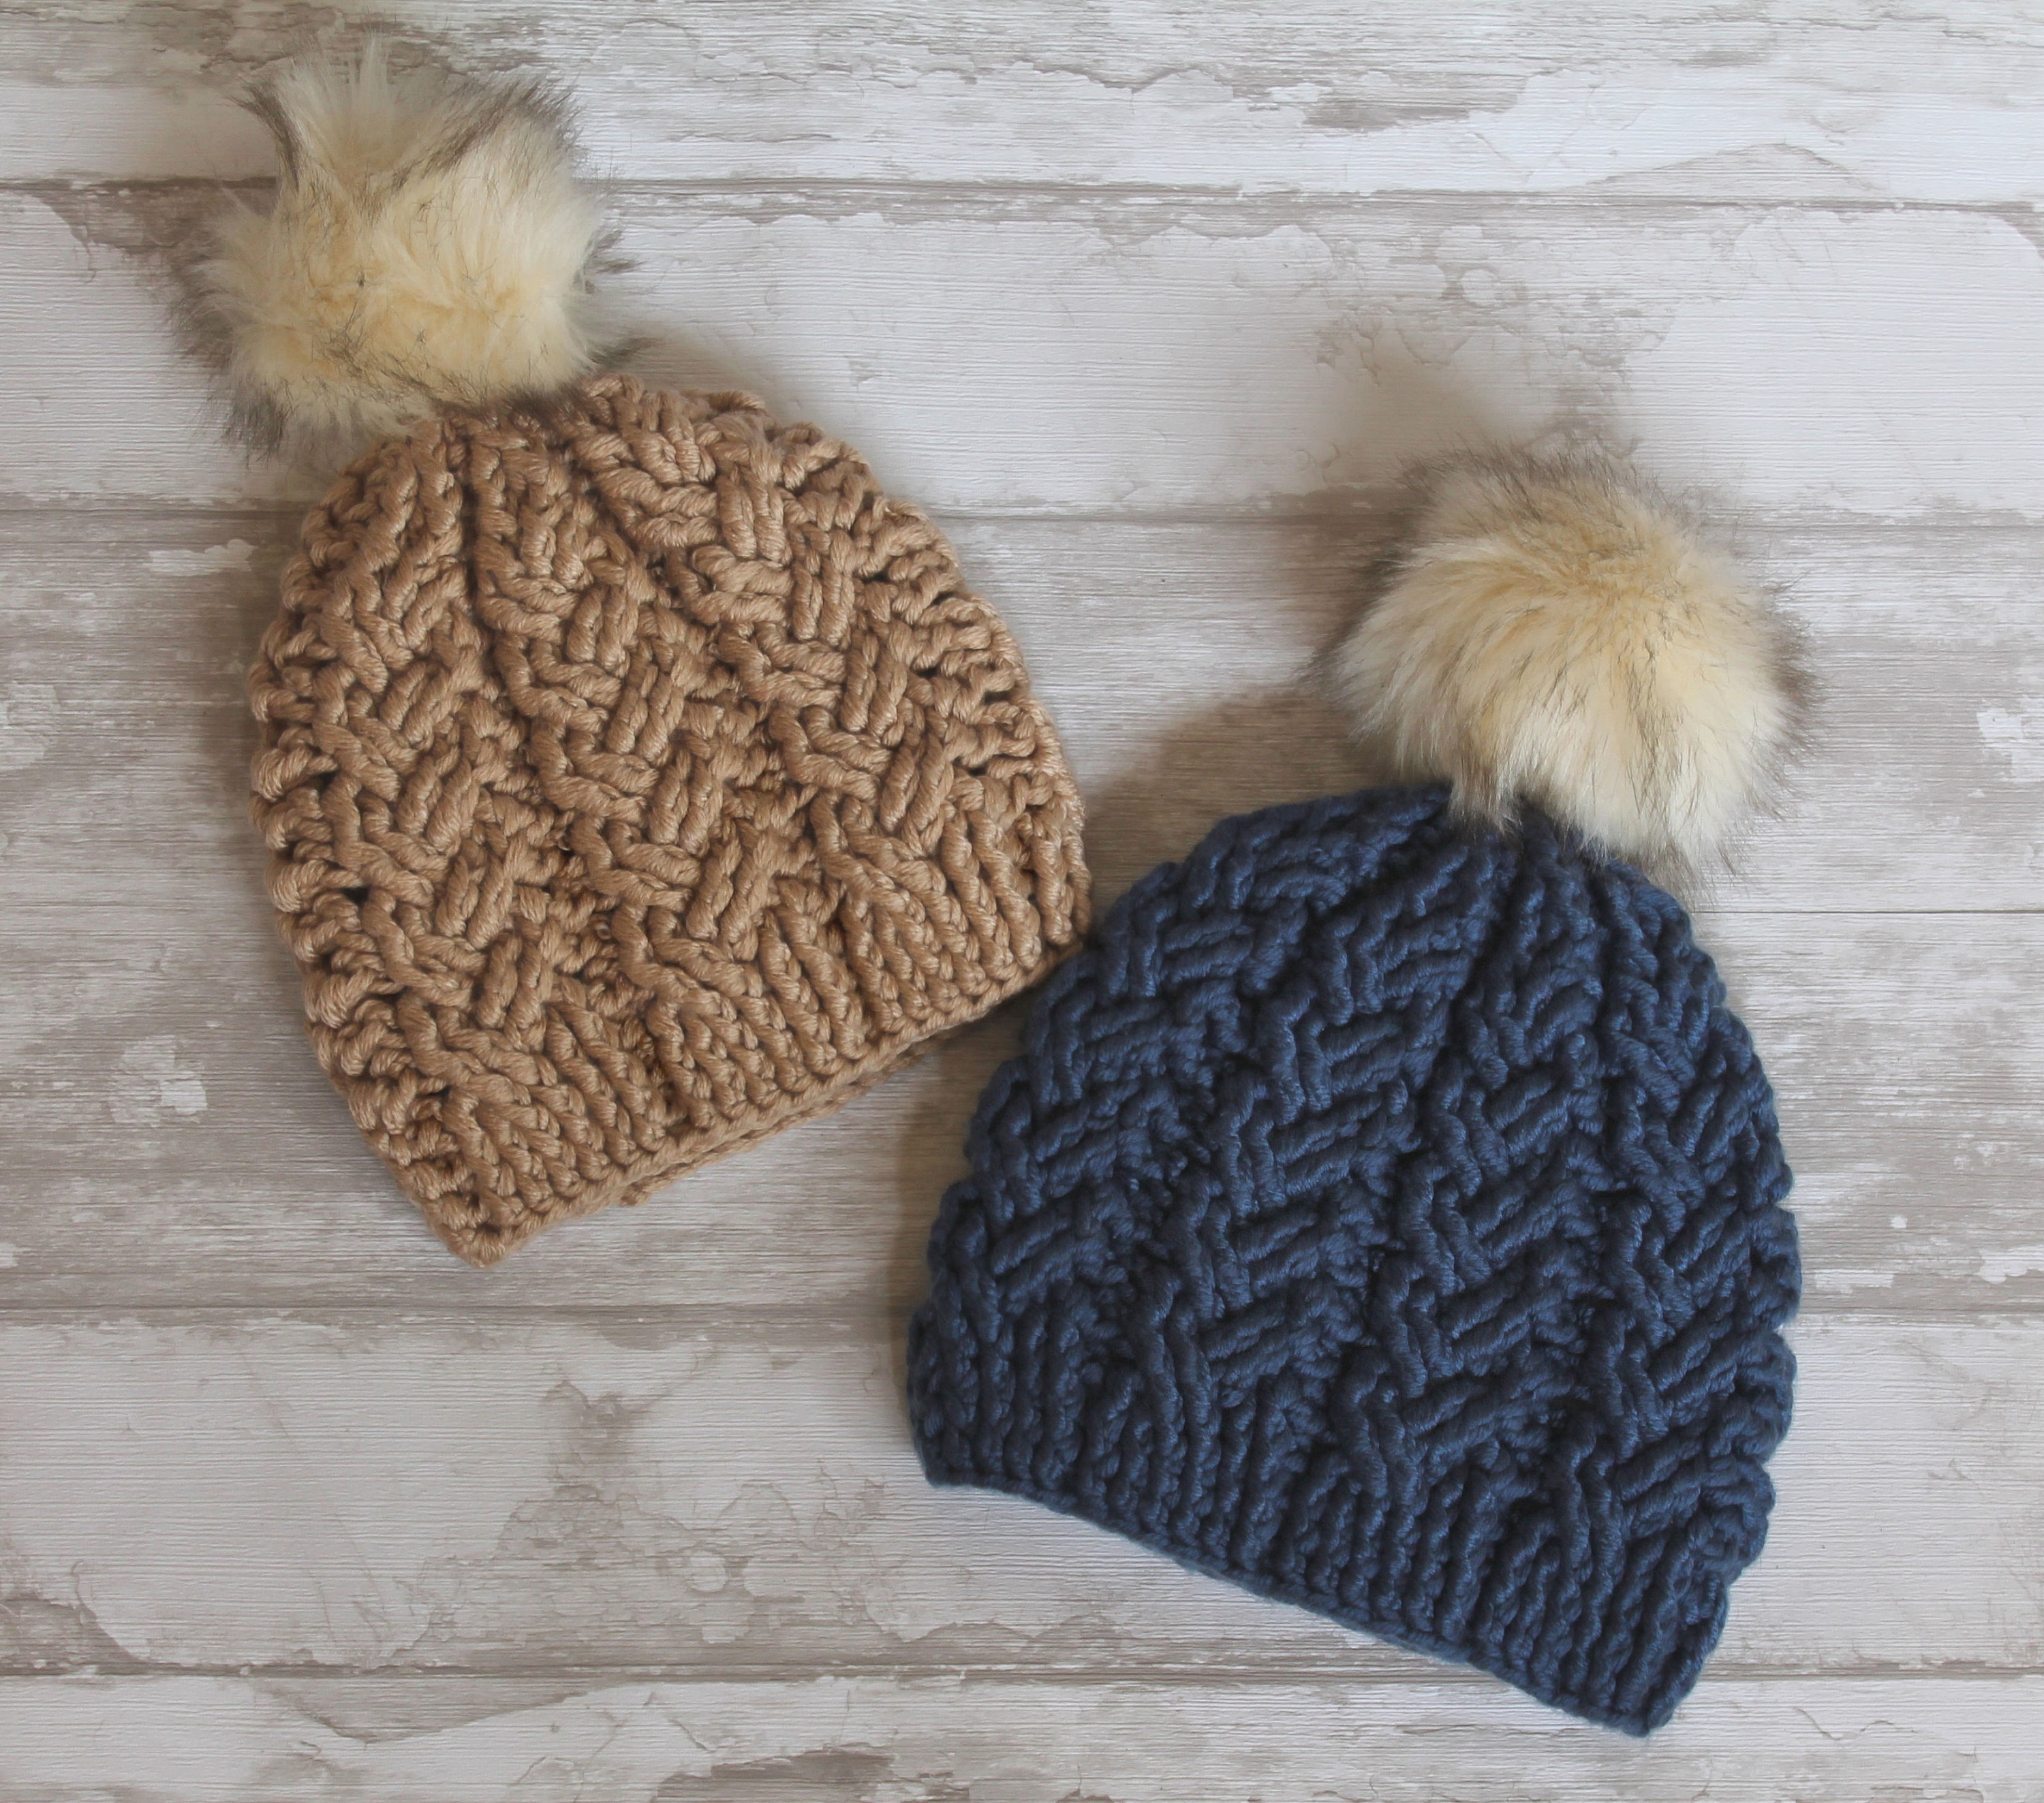 Best Products to Make with the Chunky Yarn Crochet Pattern Crochet Pattern Brooklyn Cables Beanie Chunky Yarn Crochet Pattern Chunky Cables Beanie Hat Cable Stitches English Language Only